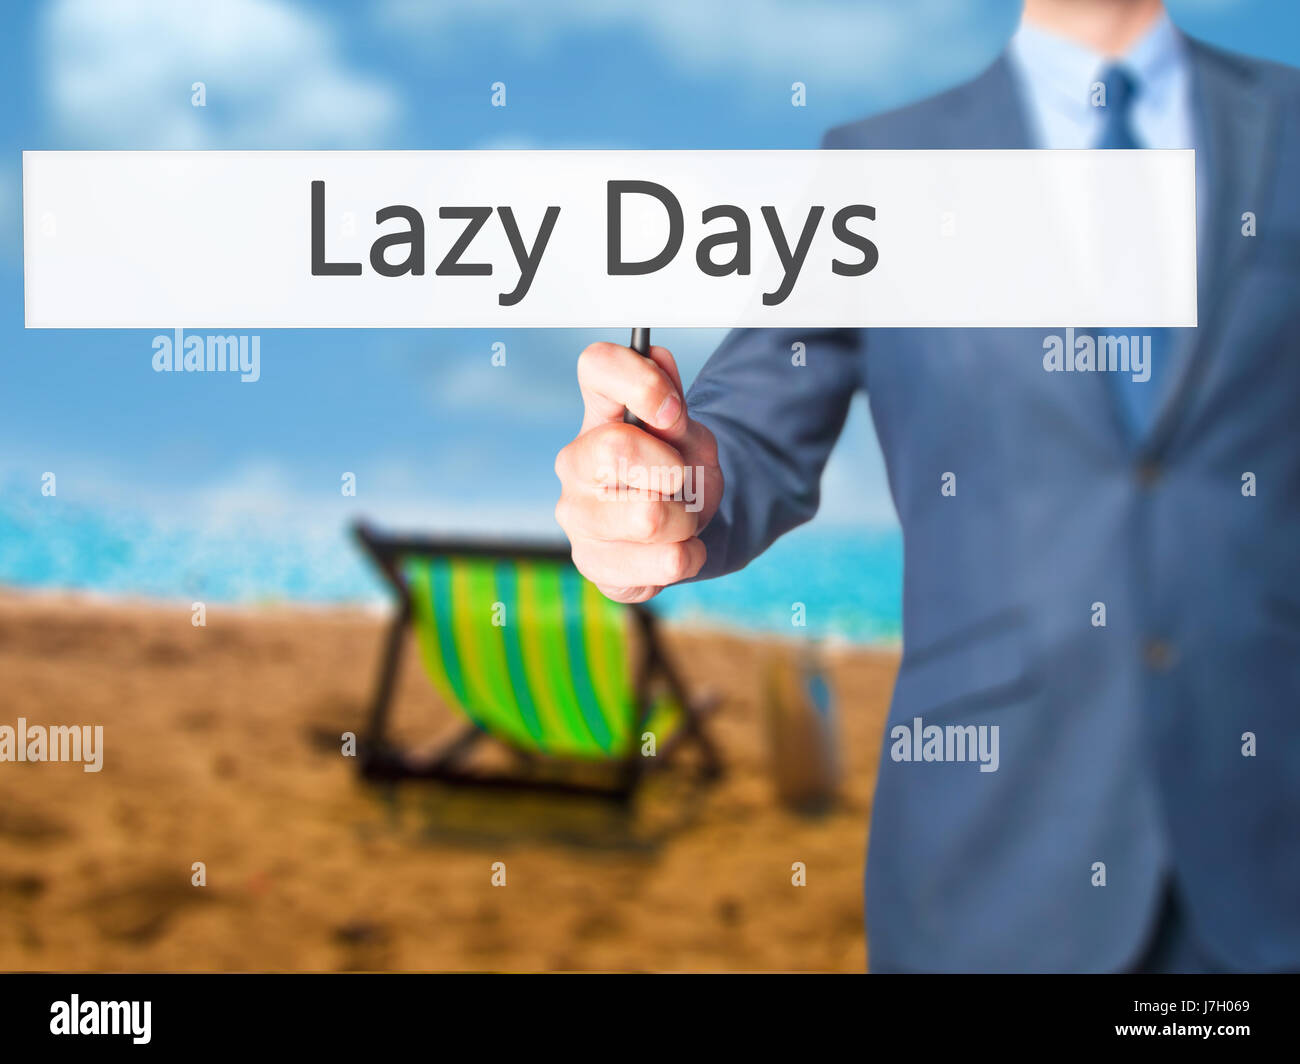 Lazy Days - Businessman hand holding sign. Business, technology, internet concept. Stock Photo - Stock Image